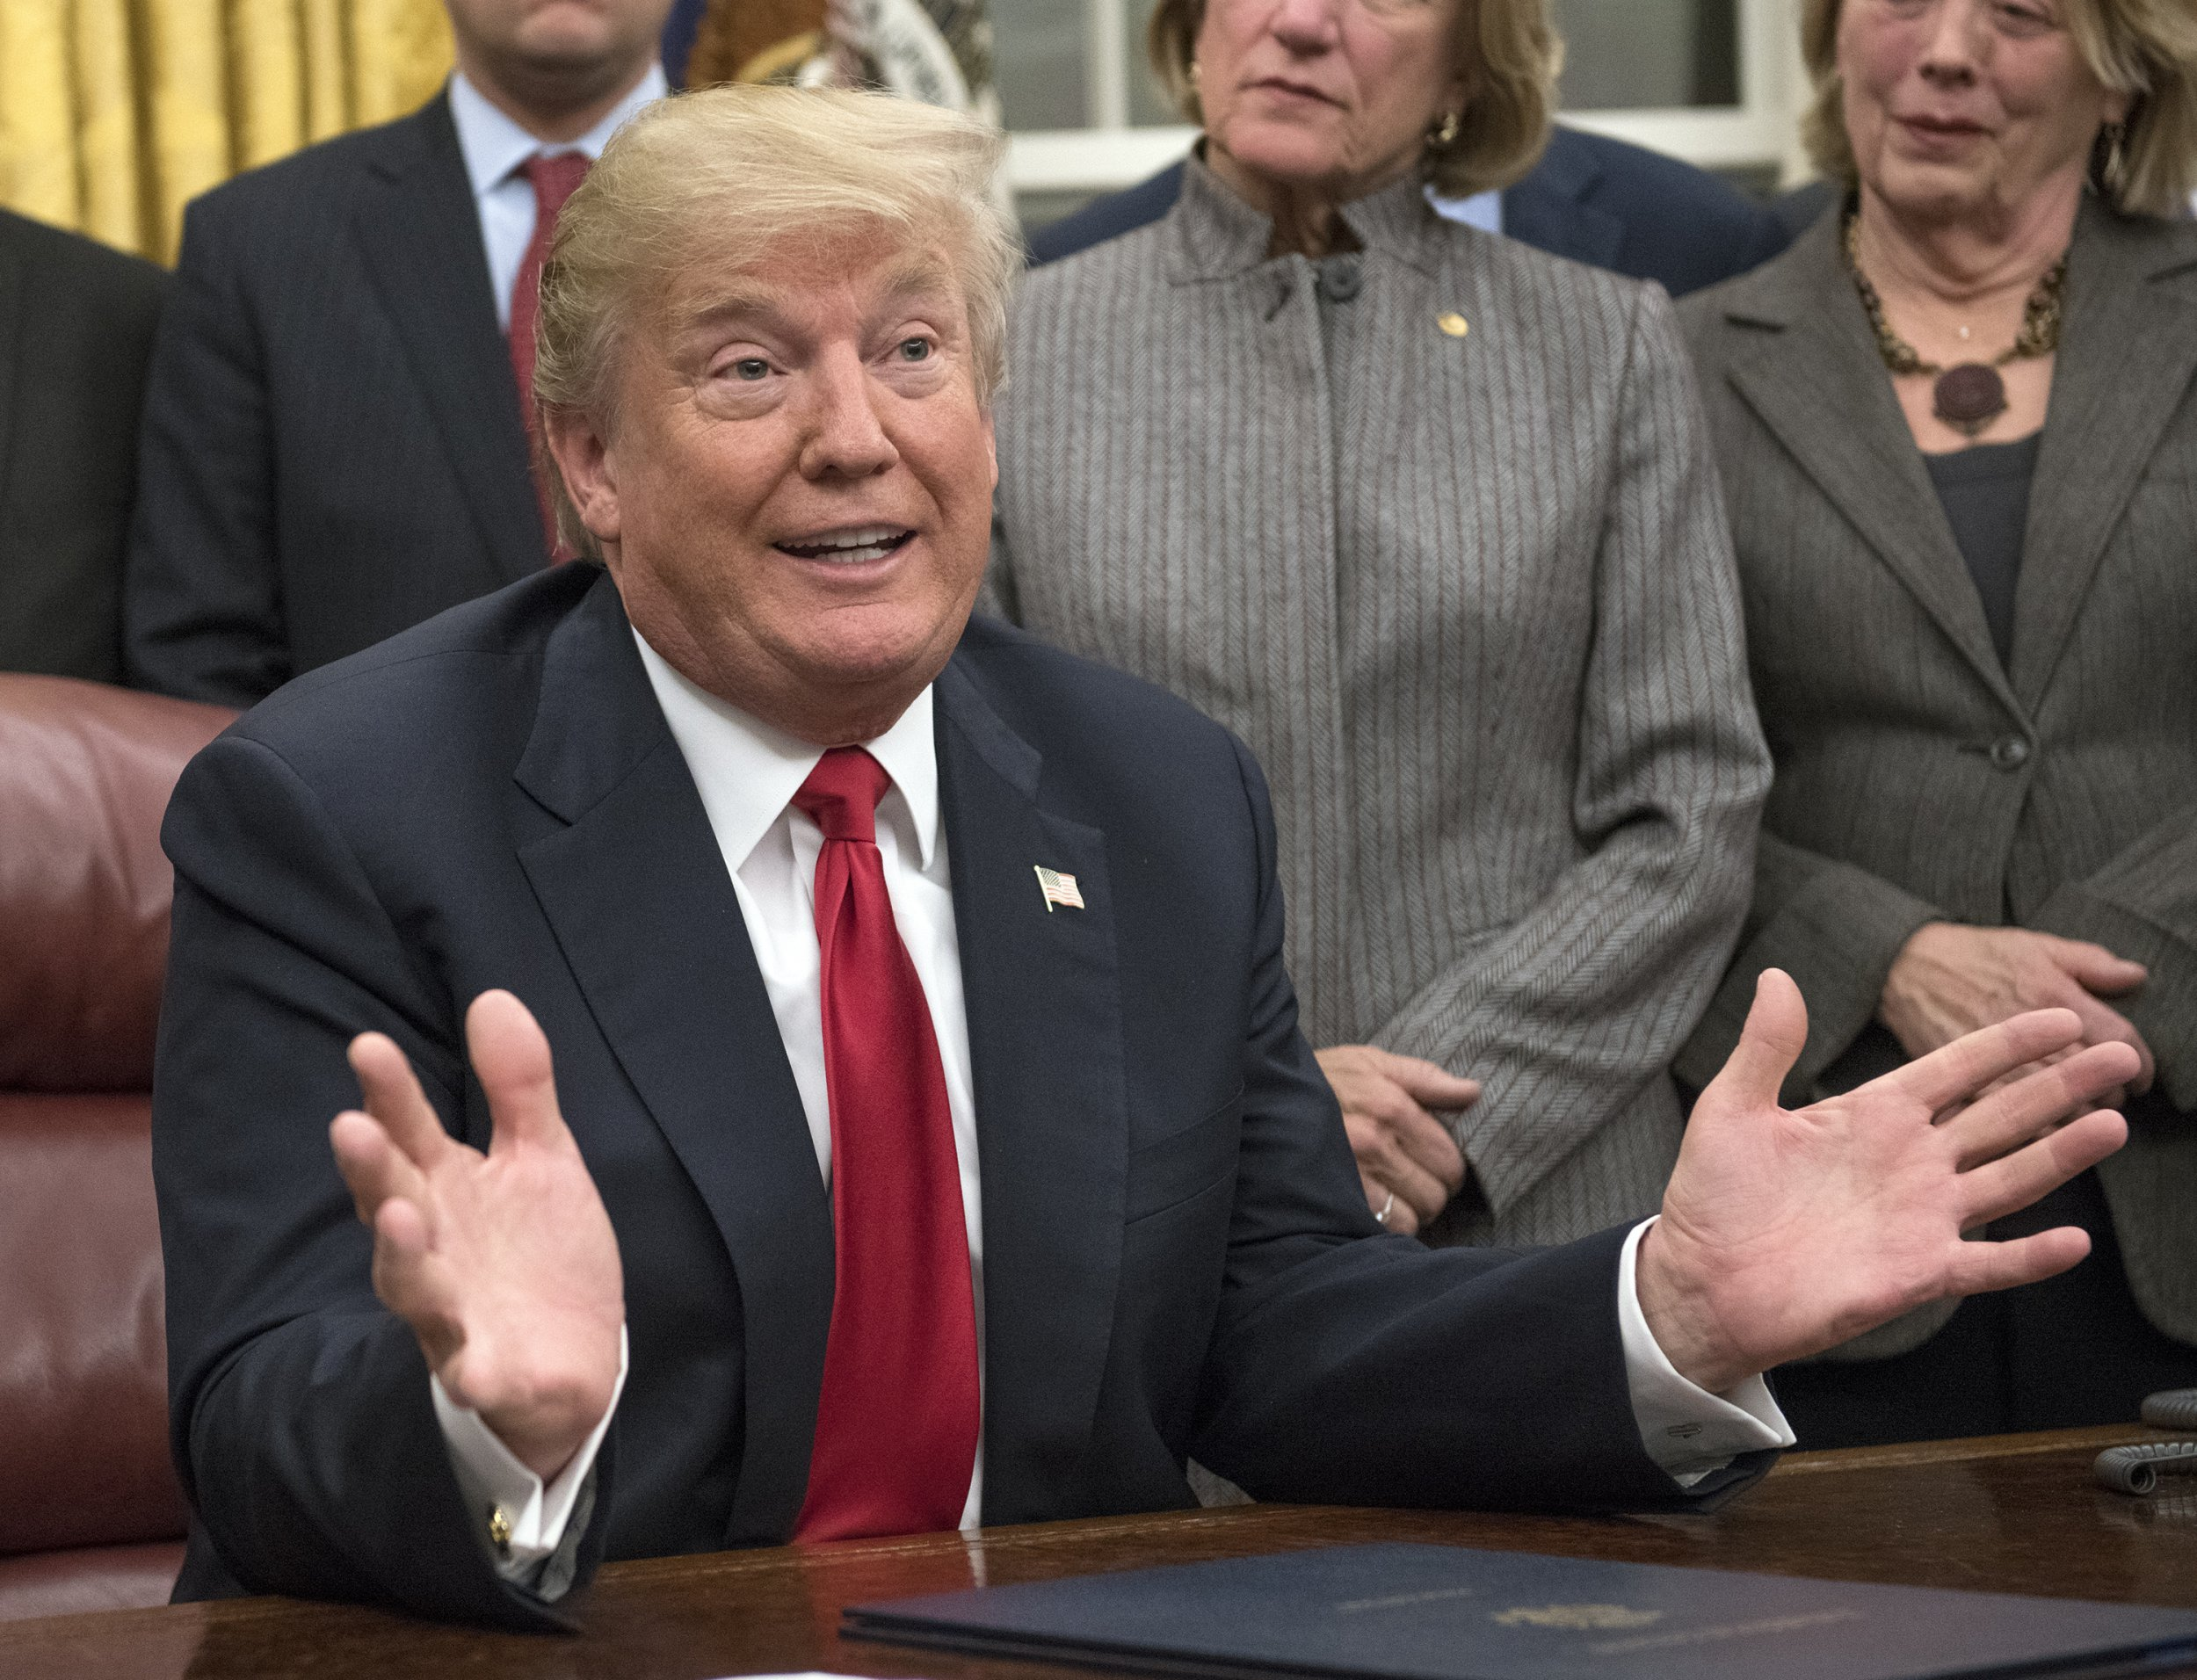 Trump says he doesn't want immigrants from 'sh*thole' countries